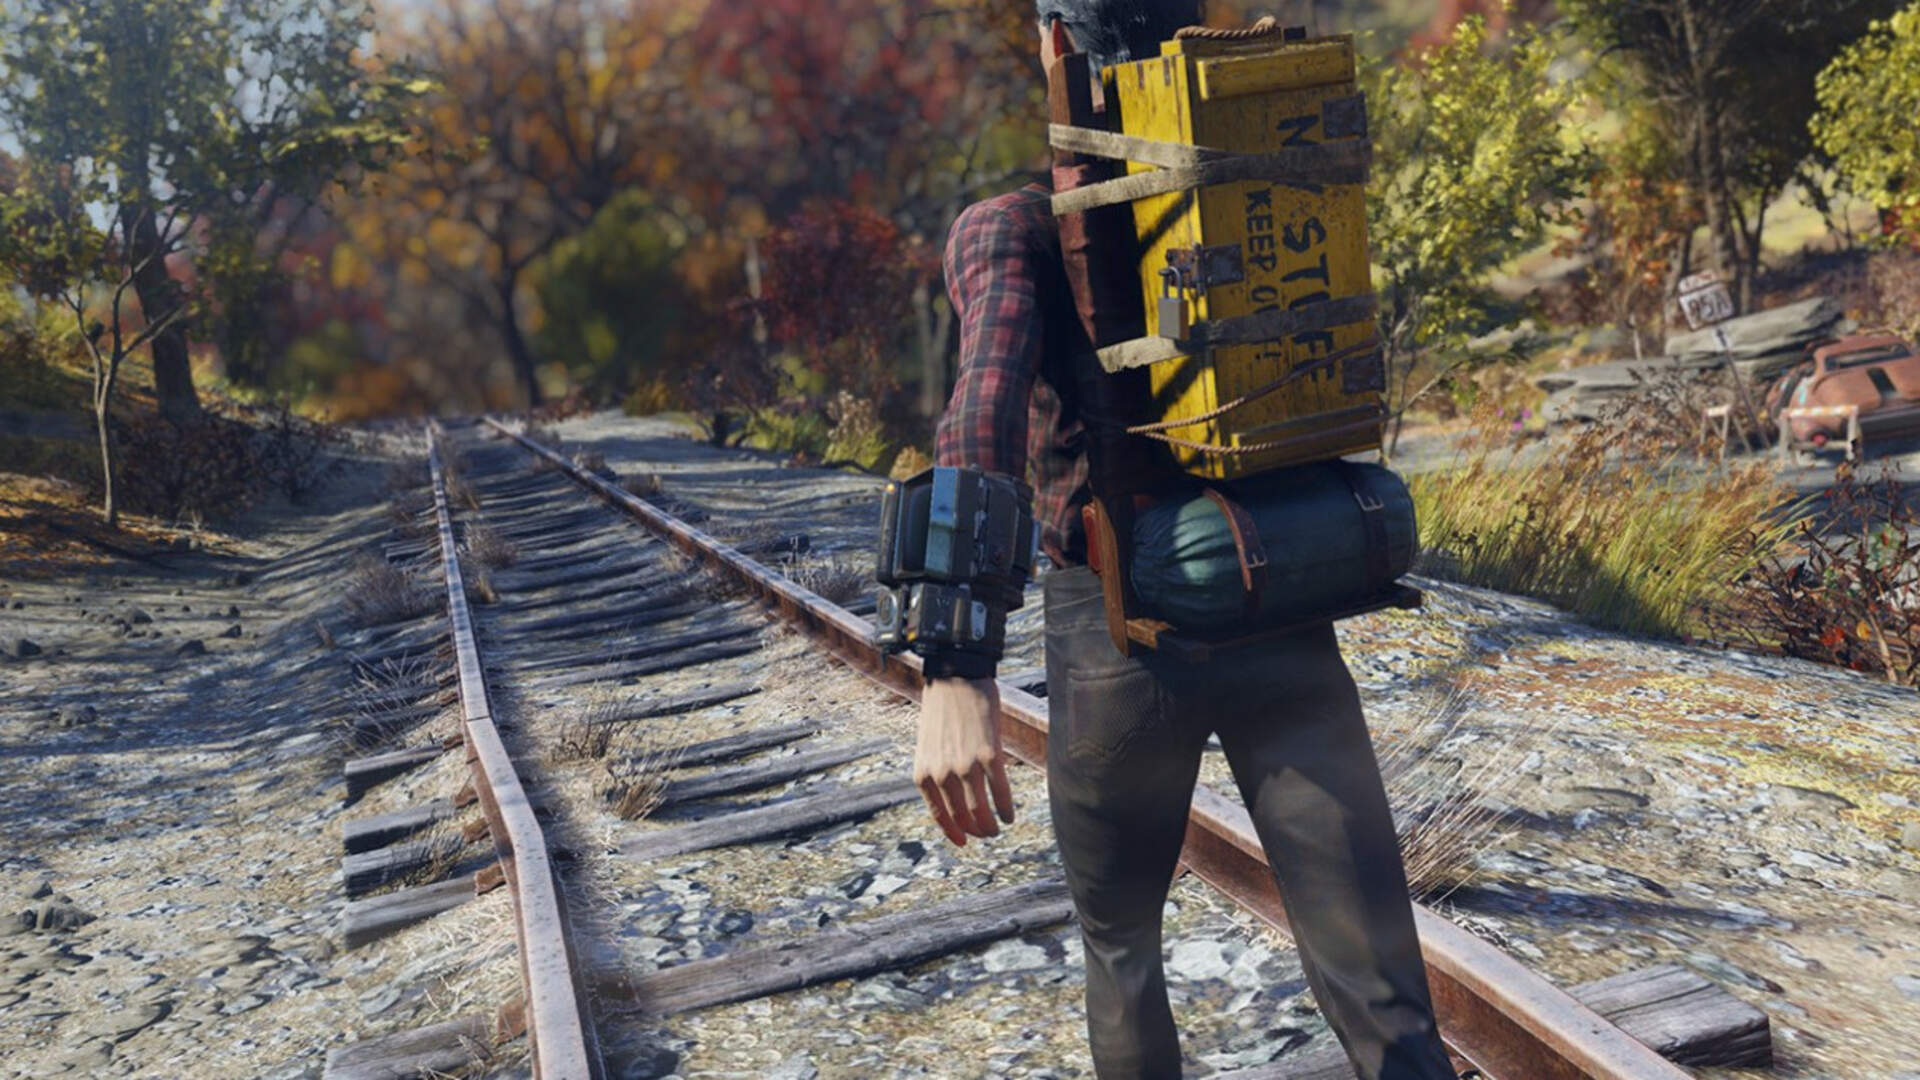 Fallout 76 2019 Roadmap Includes New Main Quest, Game Modes, and Raids